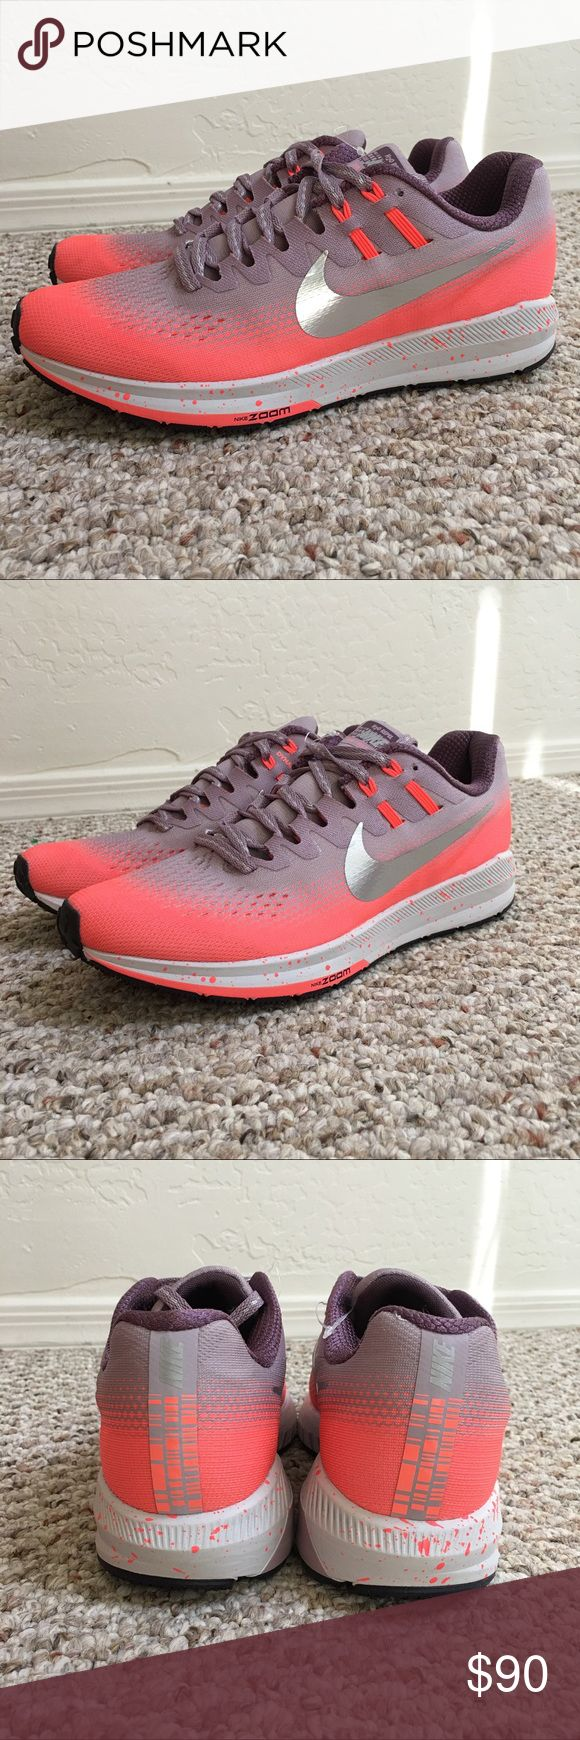 NIKE H20 REPEL ZOOM STRUCTURE RUNNING SHOE BRAND NEW   SHOES ONLY NO BOX  NEVER WORN  WOMENS NIKE H20 REPEL ZOOM STRUCTURE RUNNING SHOE  SIZE 8  COLOR MANGO PURPLE   SMOKE AND PET FREE HOME Nike Shoes Athletic Shoes